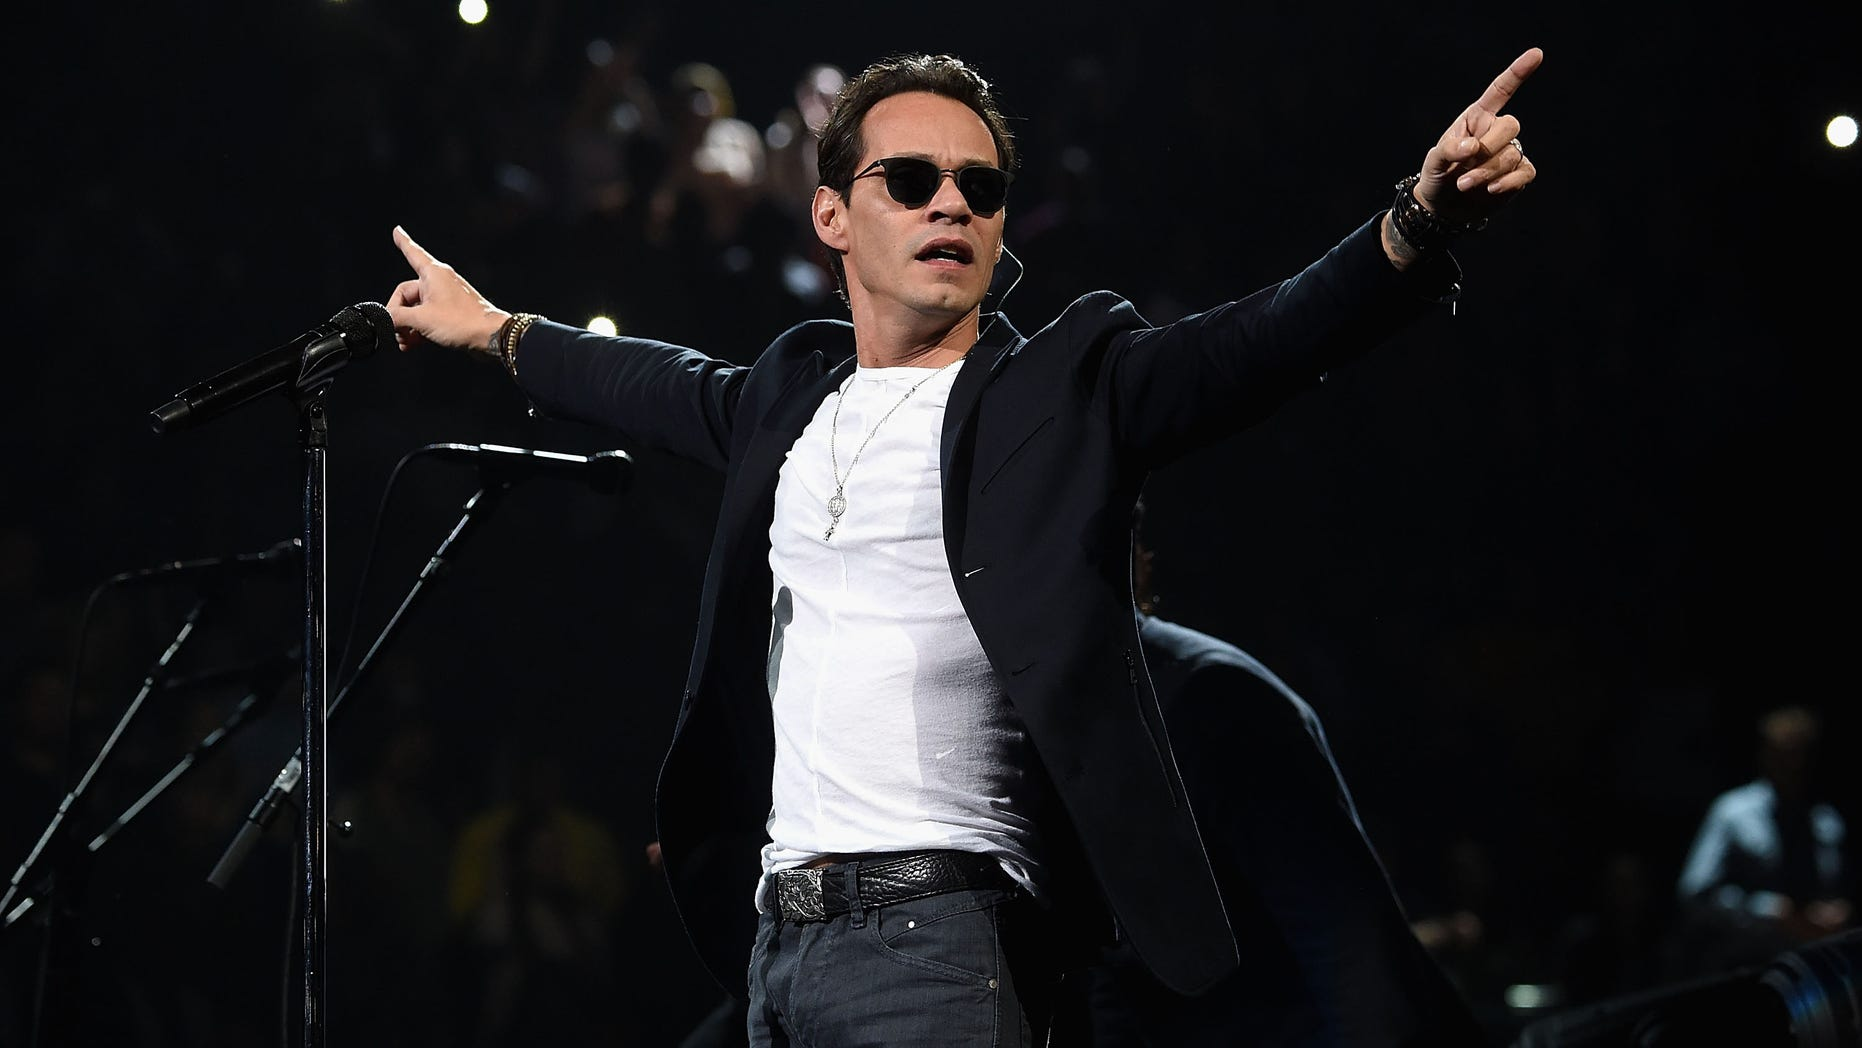 NEW YORK, NY - FEBRUARY 06:  Marc Anthony performs onstage at Madison Square Garden on February 6, 2016 in New York City.  (Photo by Jamie McCarthy/Getty Images)